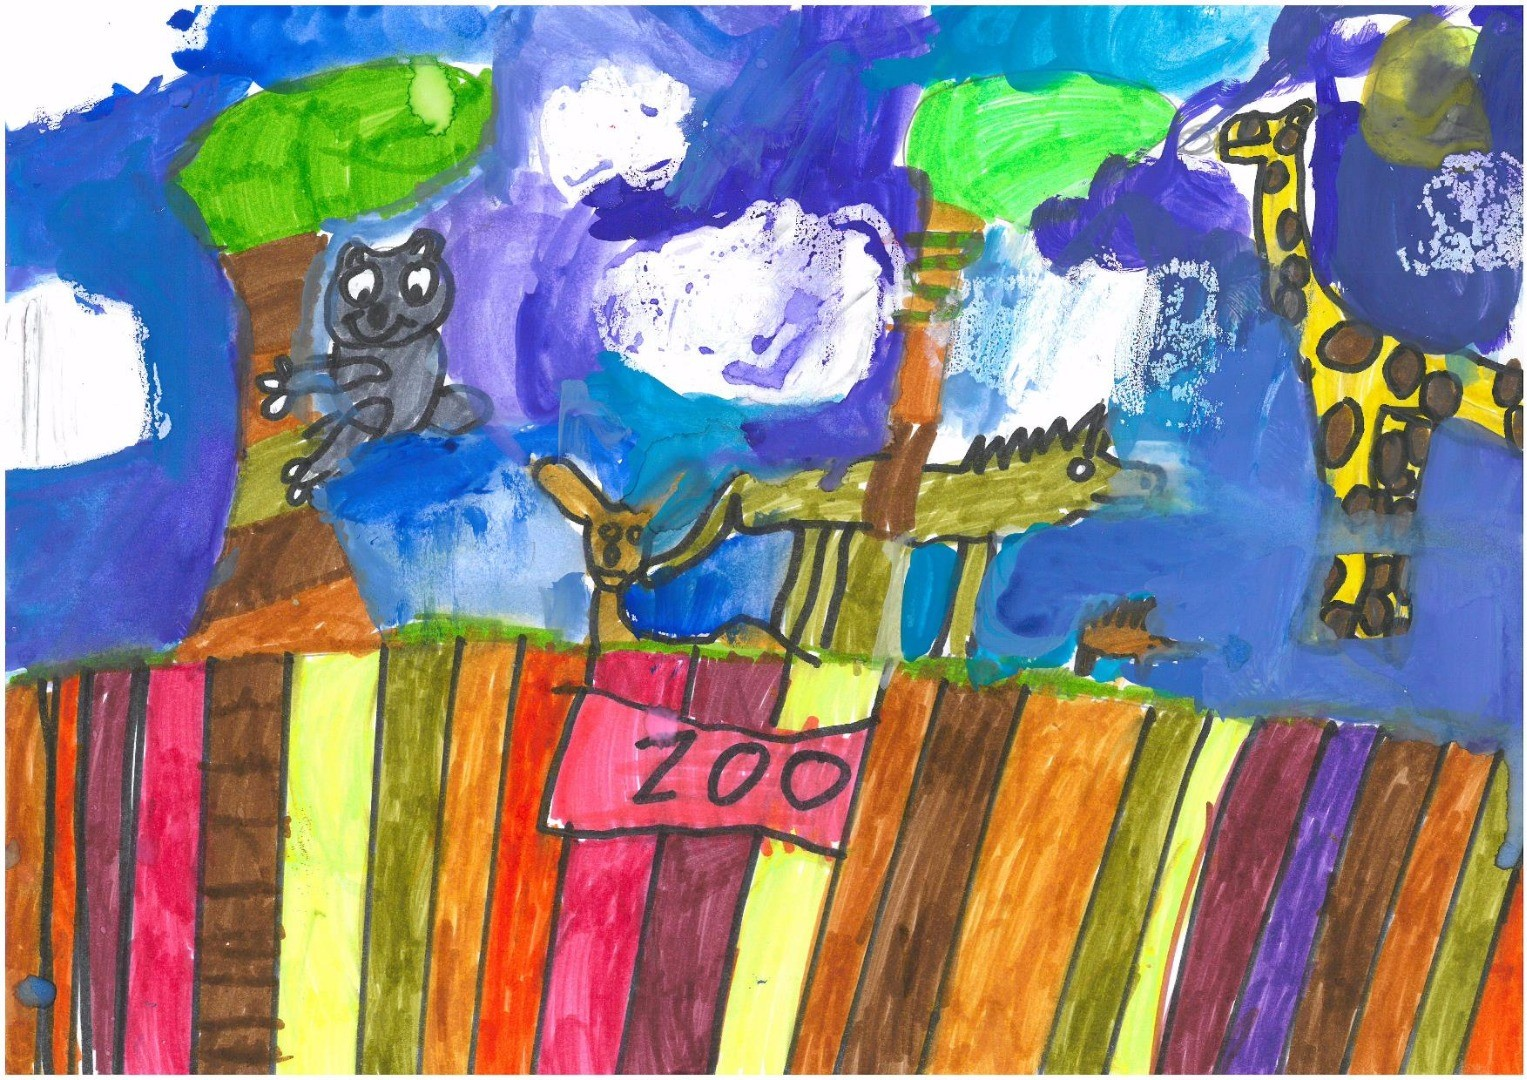 2017 Celebrate Australia Primary School Art Competition Highly Commended Section One: Australia Zoo by Skylah Carlyon,